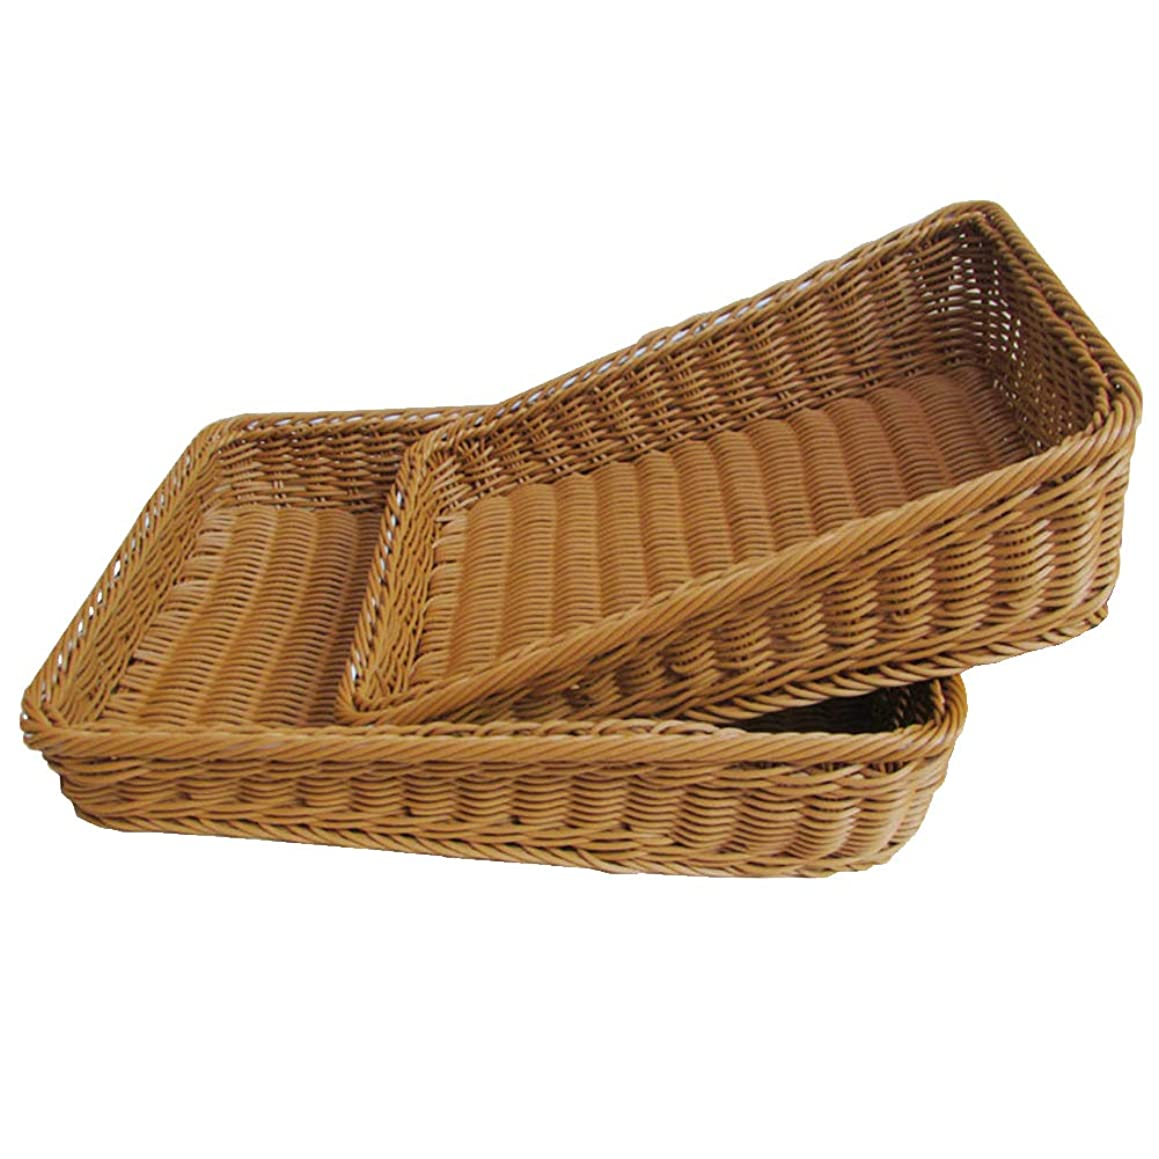 Wicker Bread Basket, Rectangle Imitation Rattan Tray for Food Serving Restaurant Kitchen Coffee Table Display Decoration Baskets Fruit Snacks Container, Storage Basket(30X20X6cm)